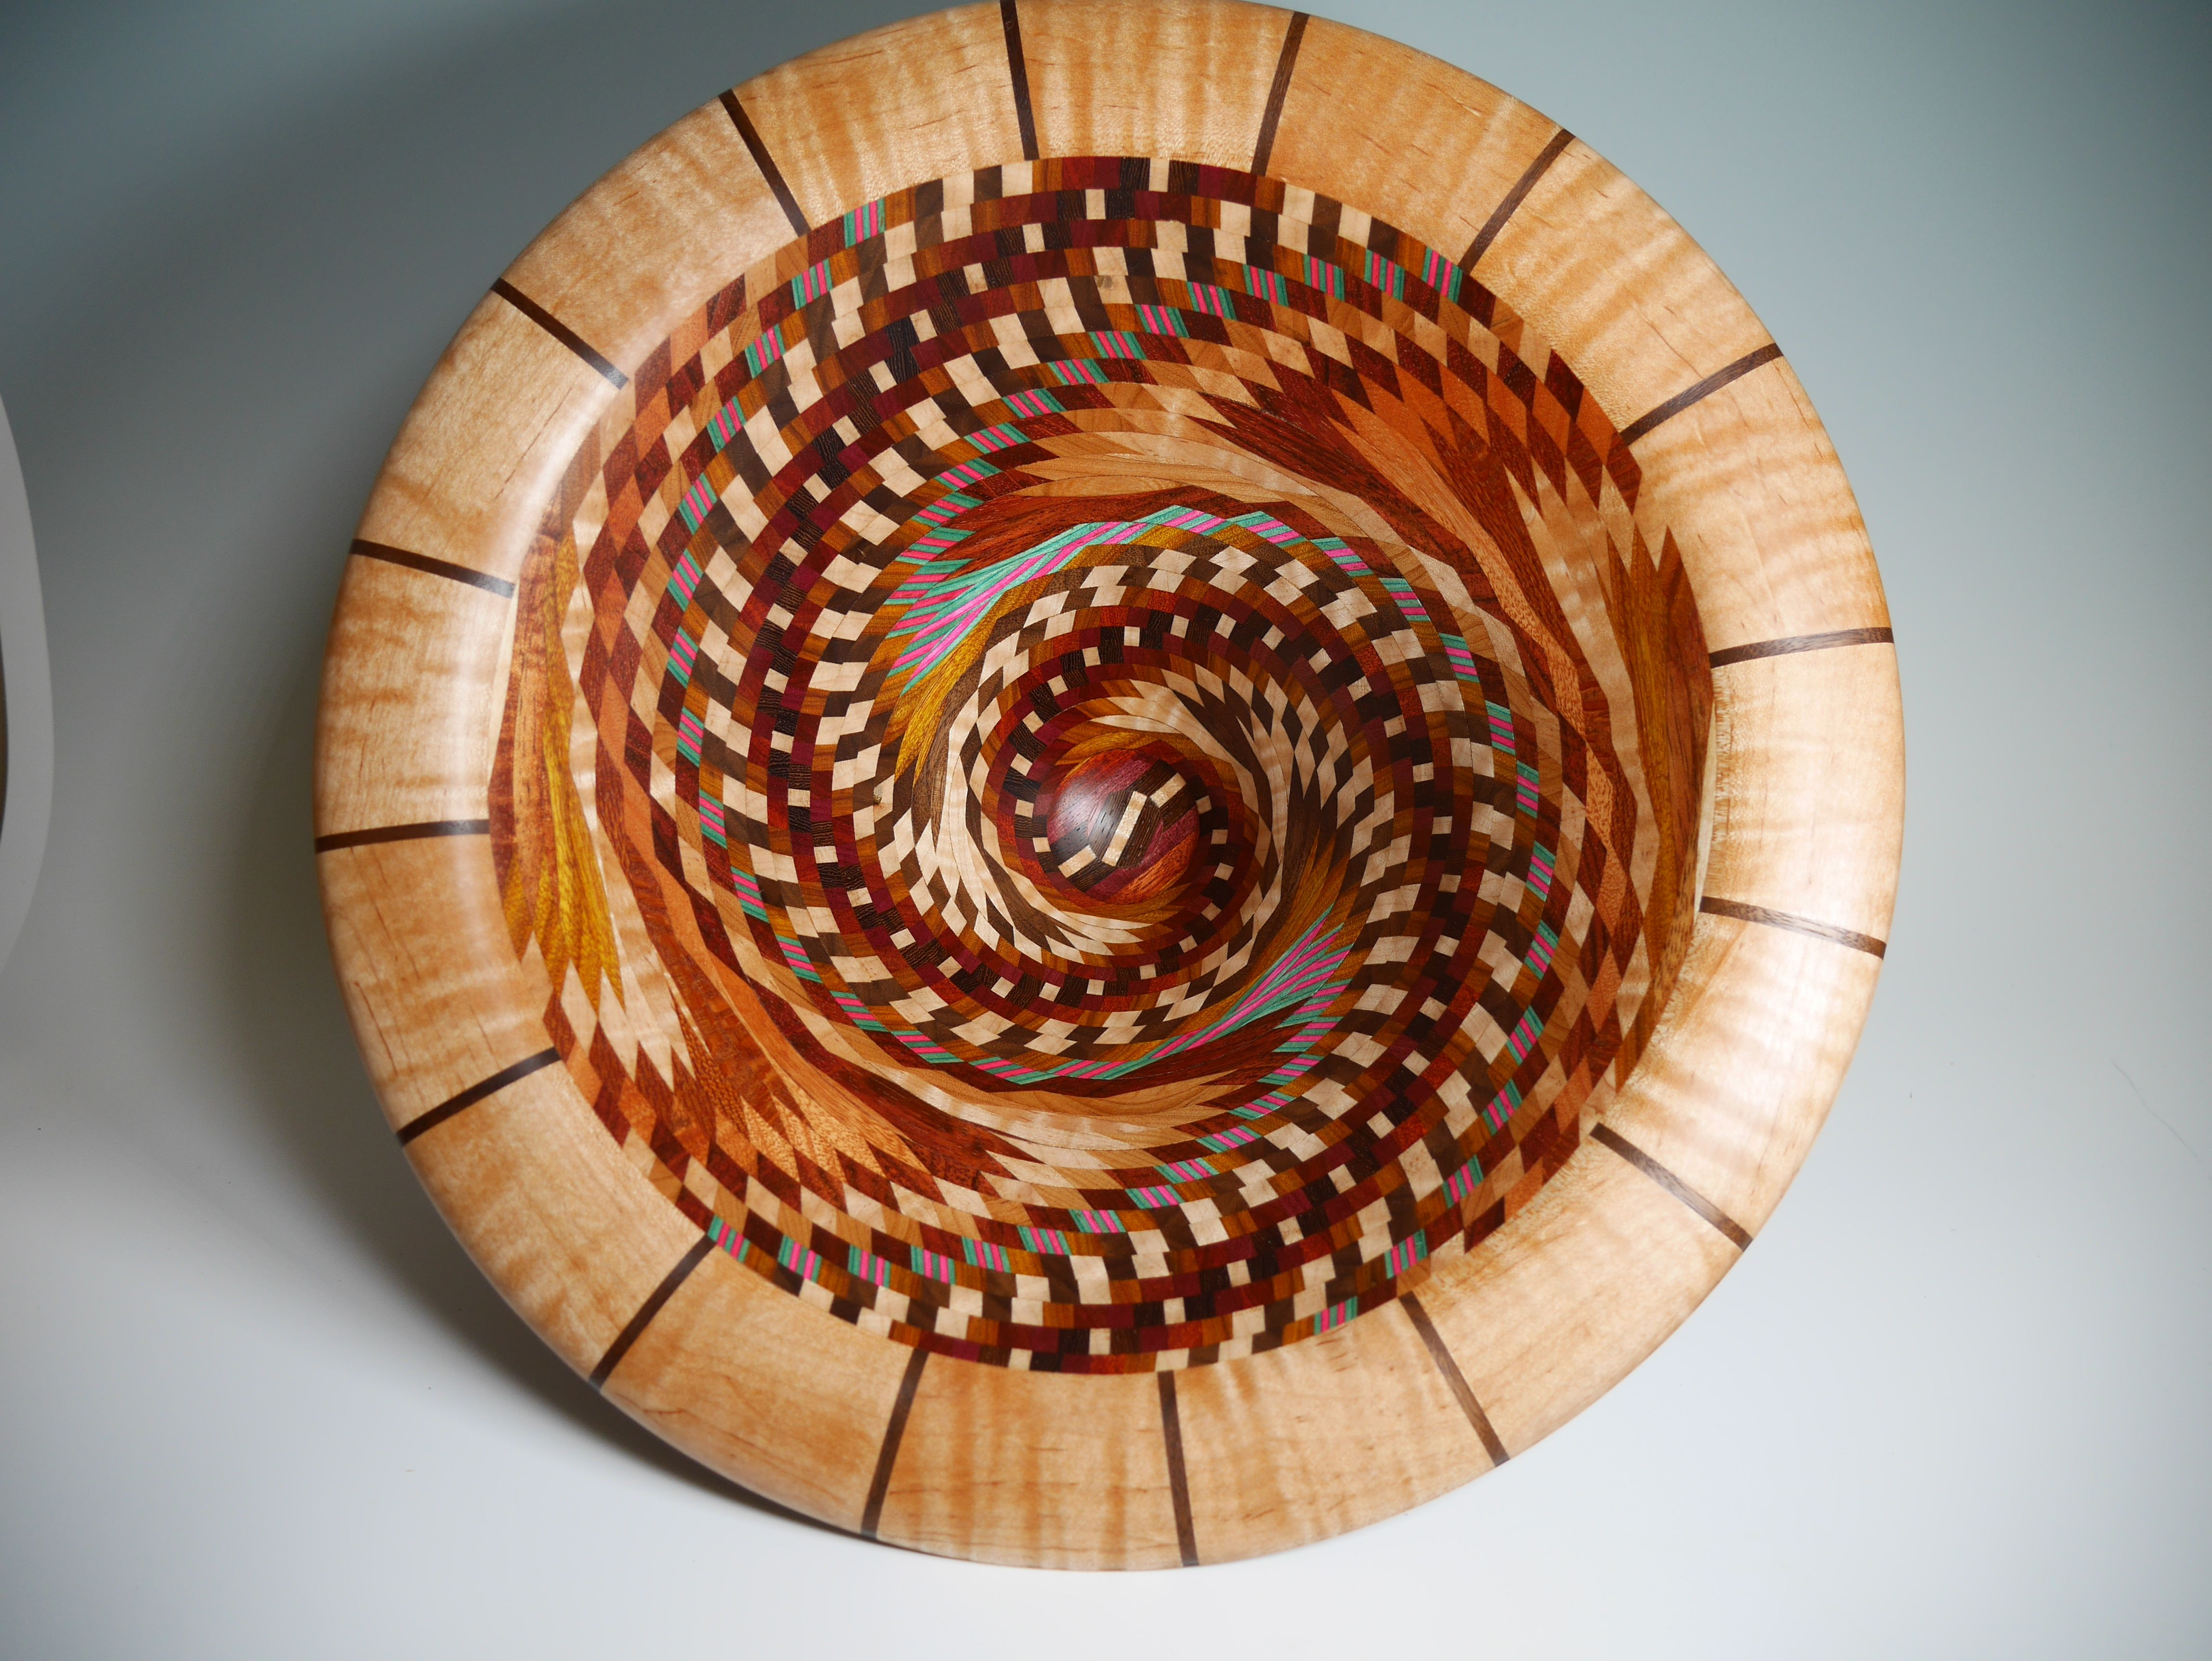 Dizzy bowl in 2020 decorative bowls bowl lathe projects